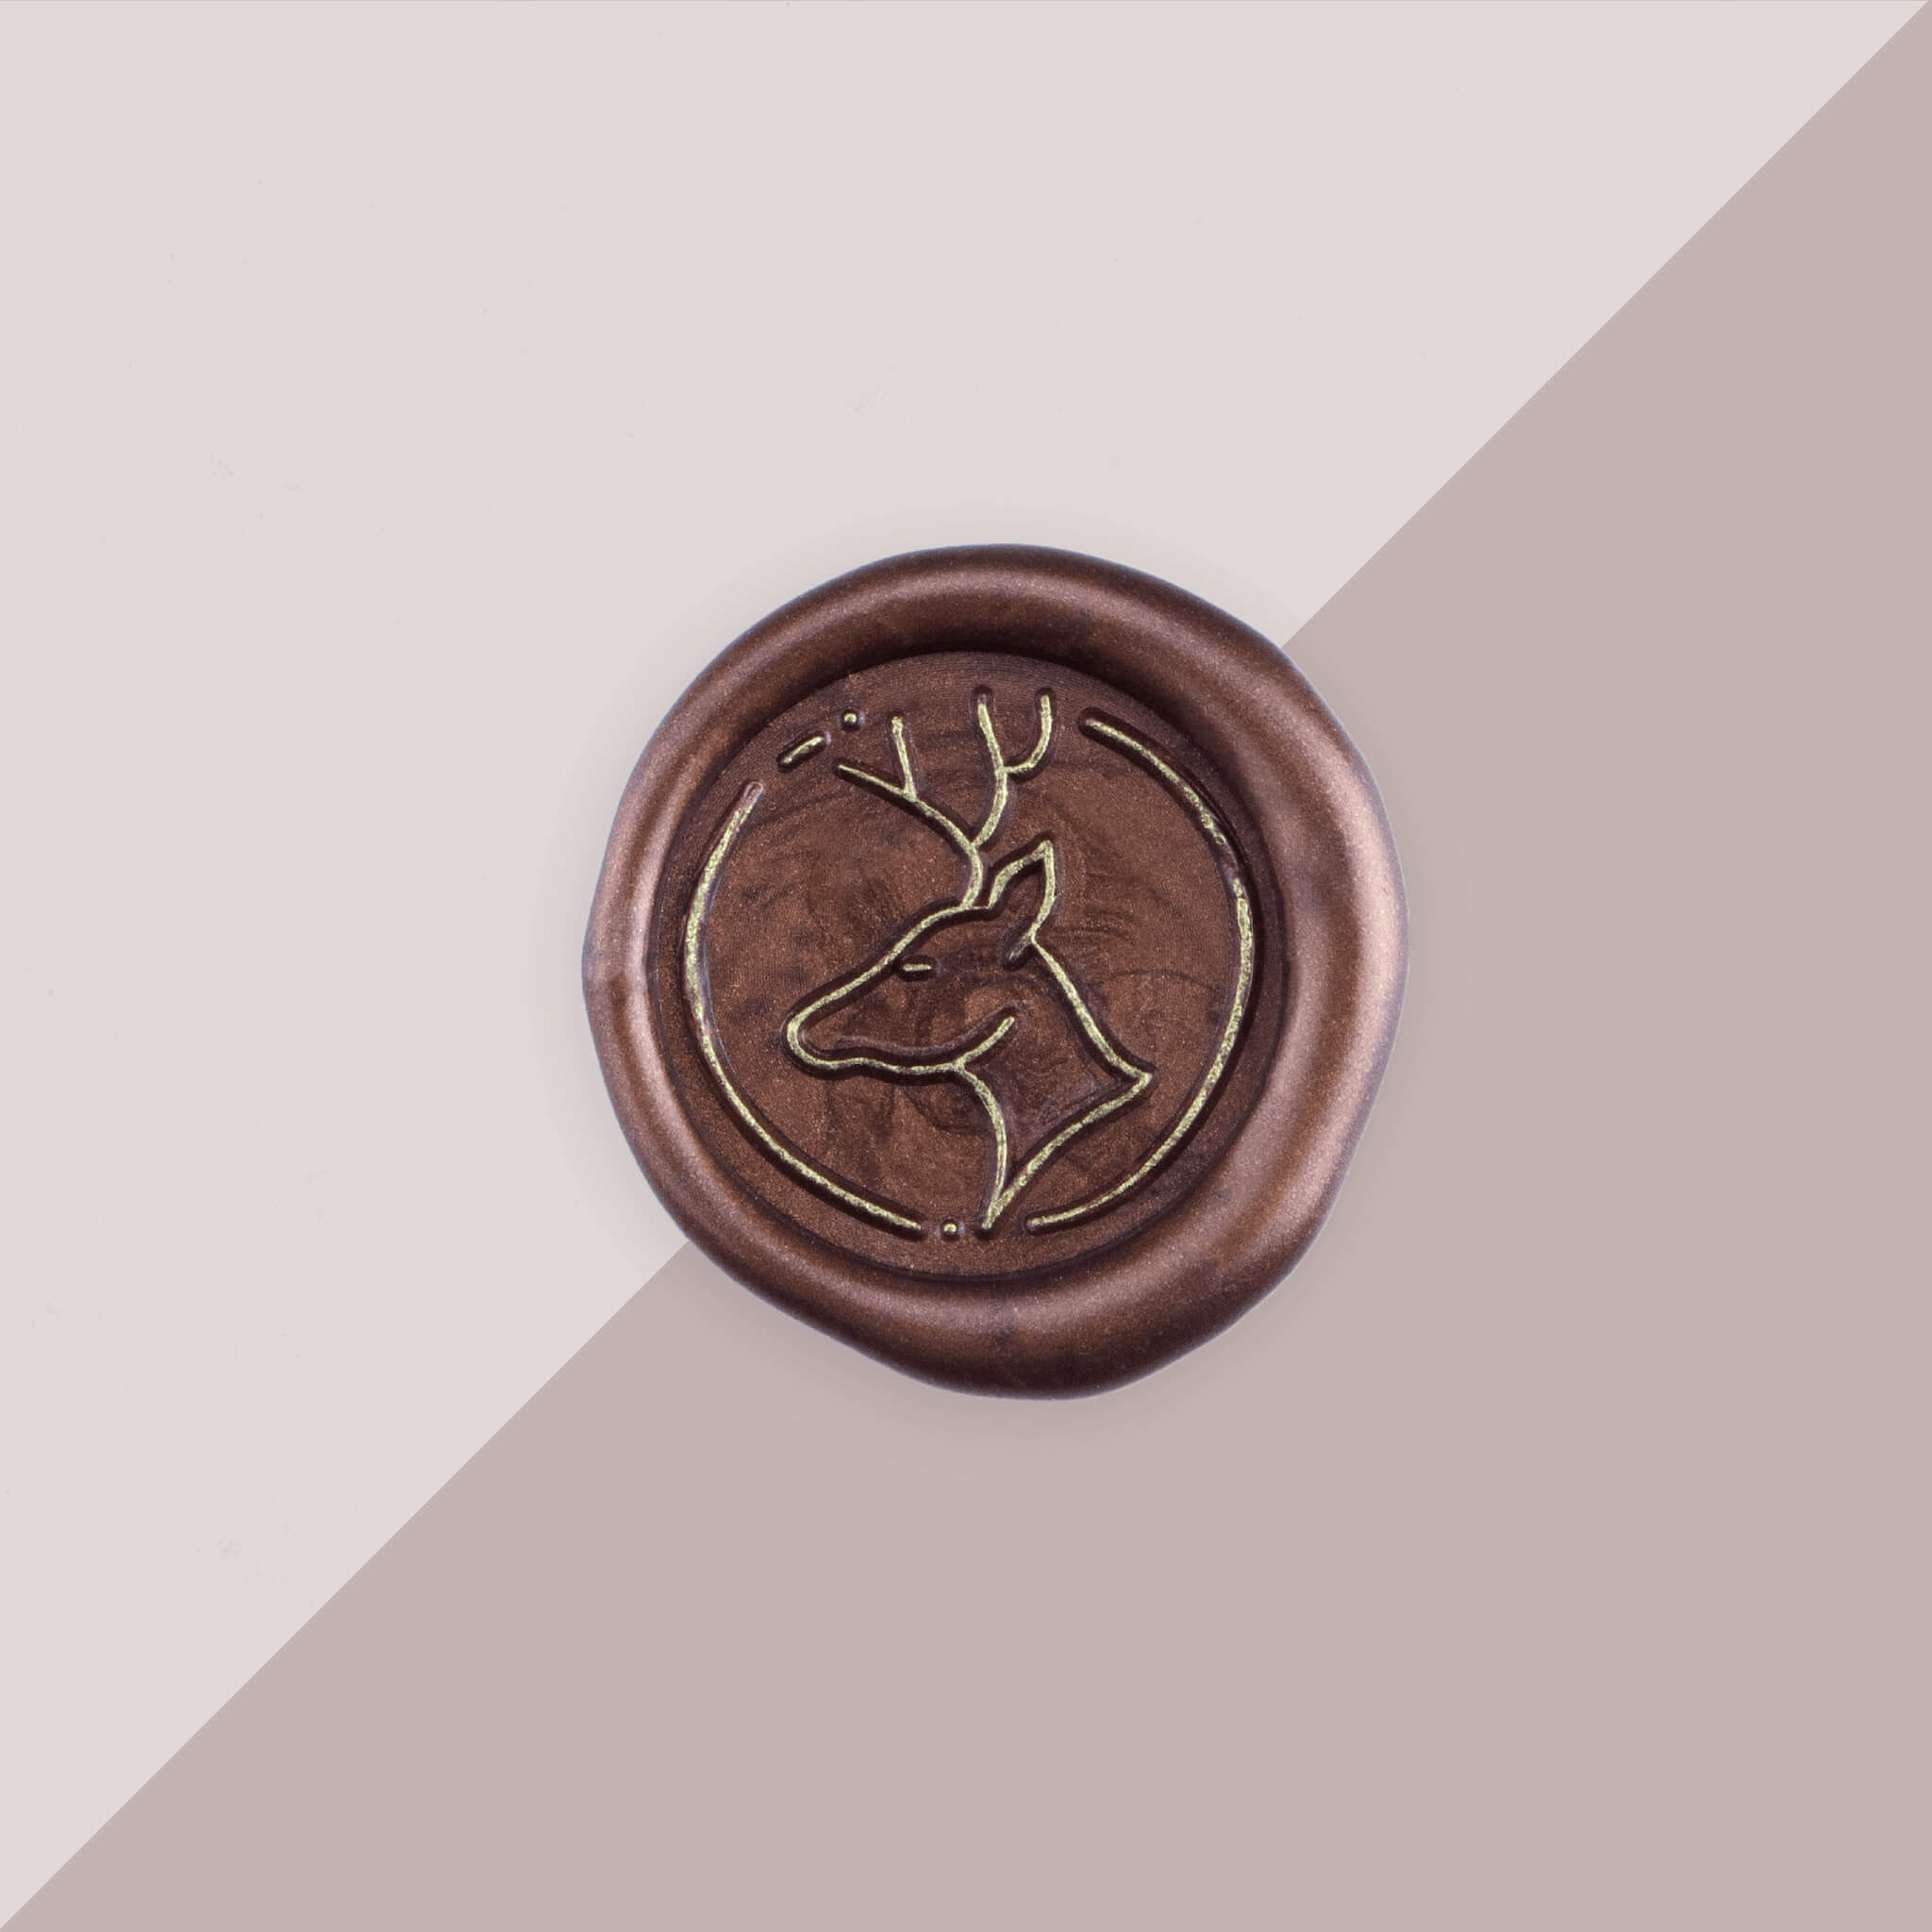 Wax Seal Stamp - Classic Symbols